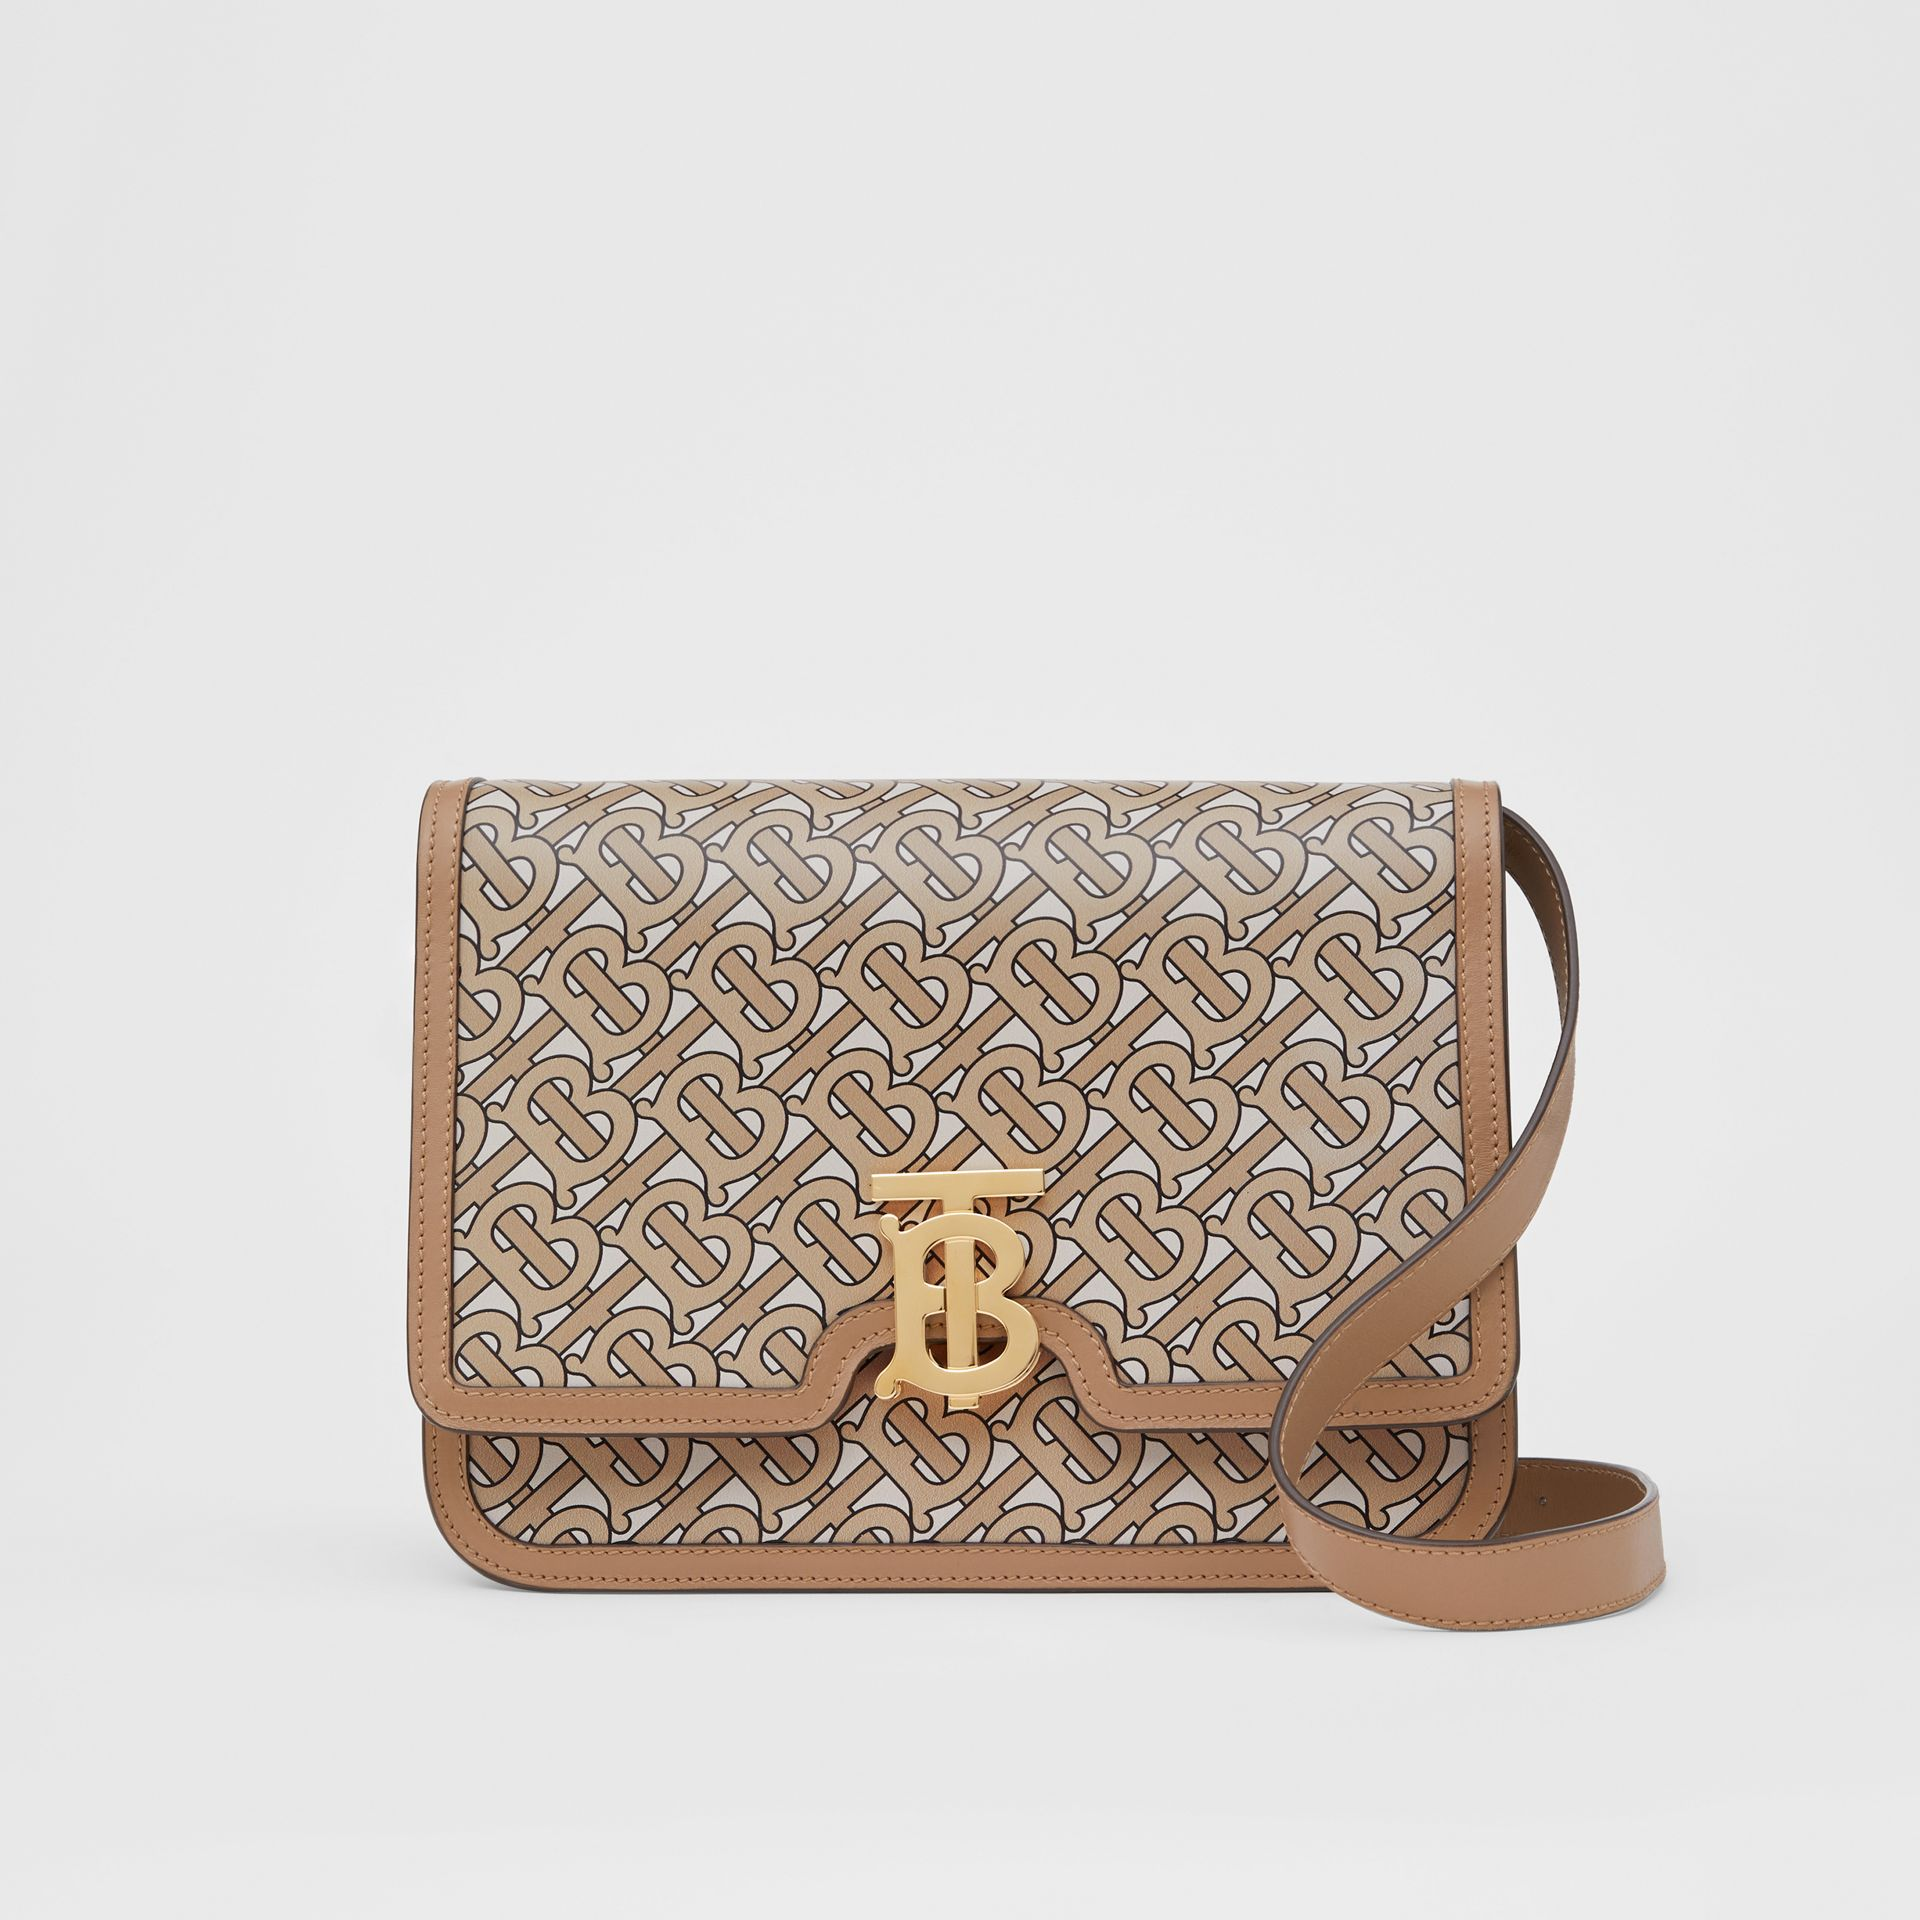 Medium Monogram Print Leather TB Bag in Beige - Women | Burberry United States - gallery image 0